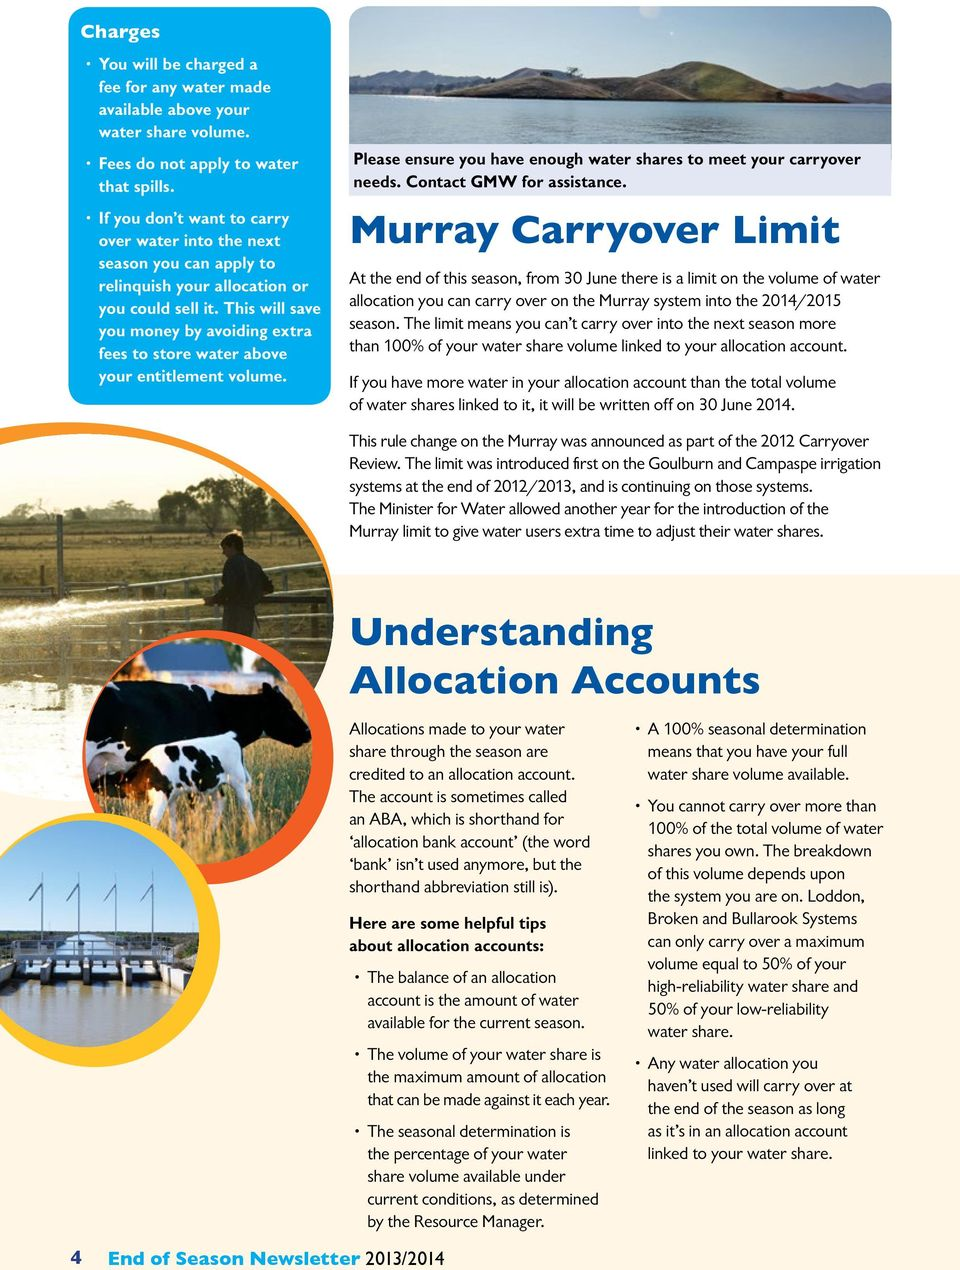 This will save you money by avoiding extra fees to store water above your entitlement volume. Please ensure you have enough water shares to meet your carryover needs. Contact GMW for assistance.